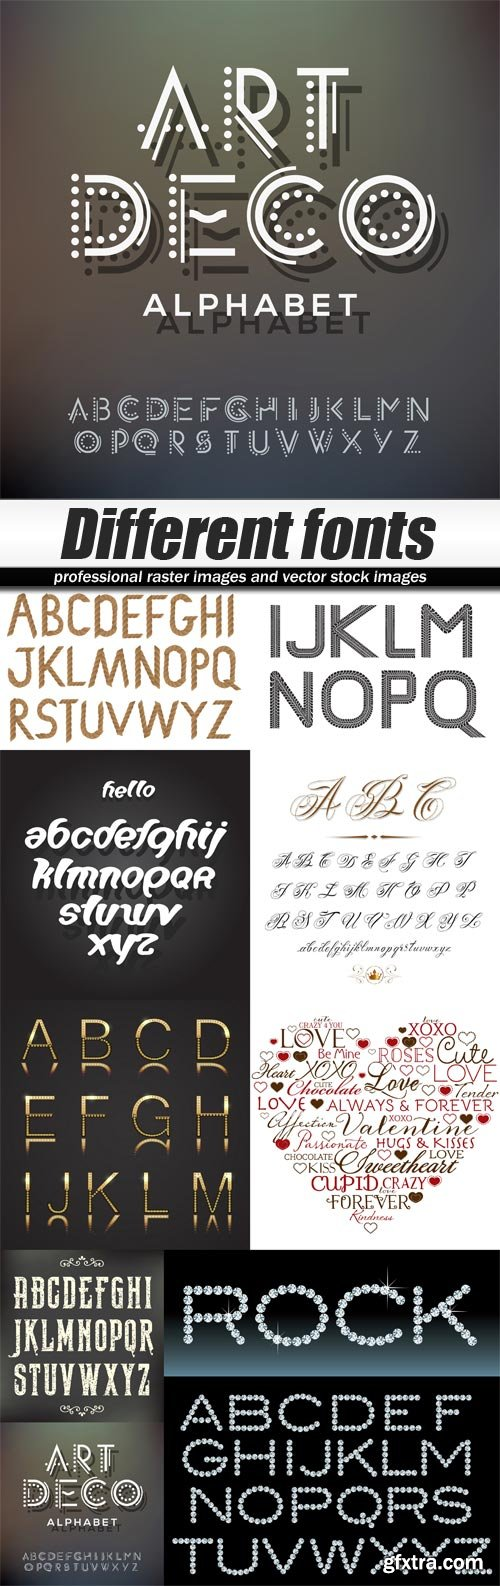 Different fonts